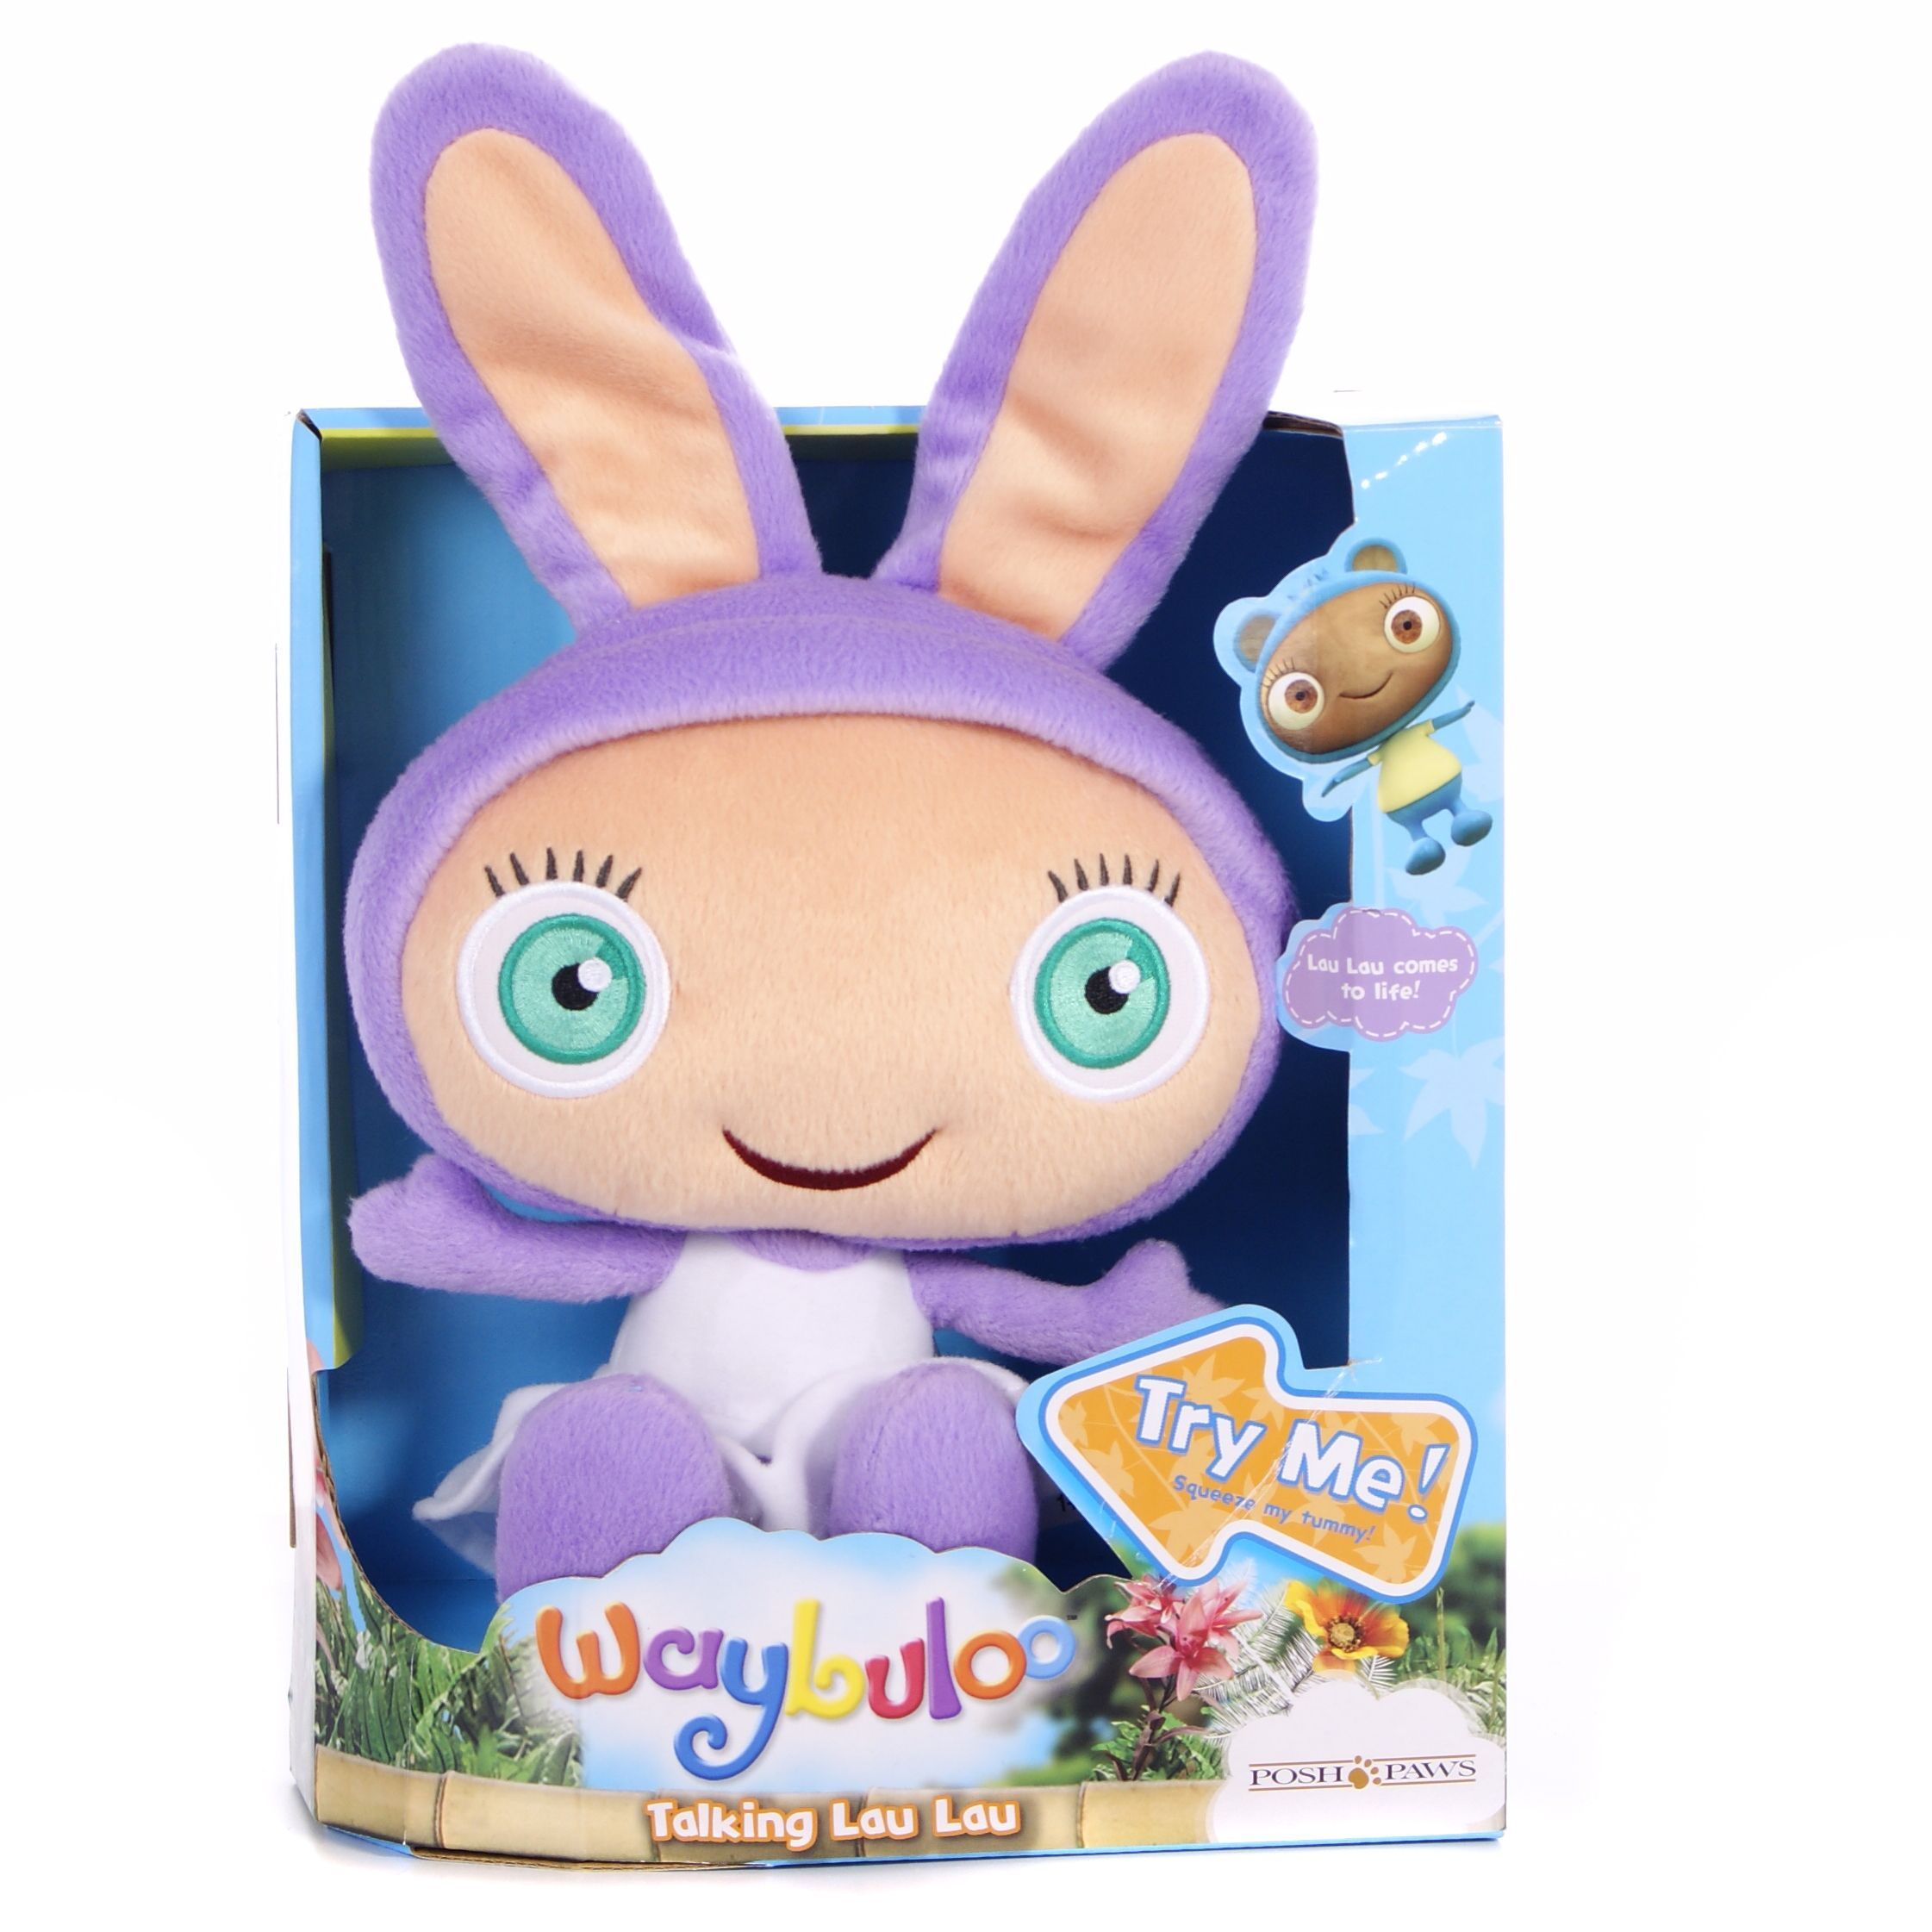 Waybuloo Talking Plush Lau Lau Soft Toy